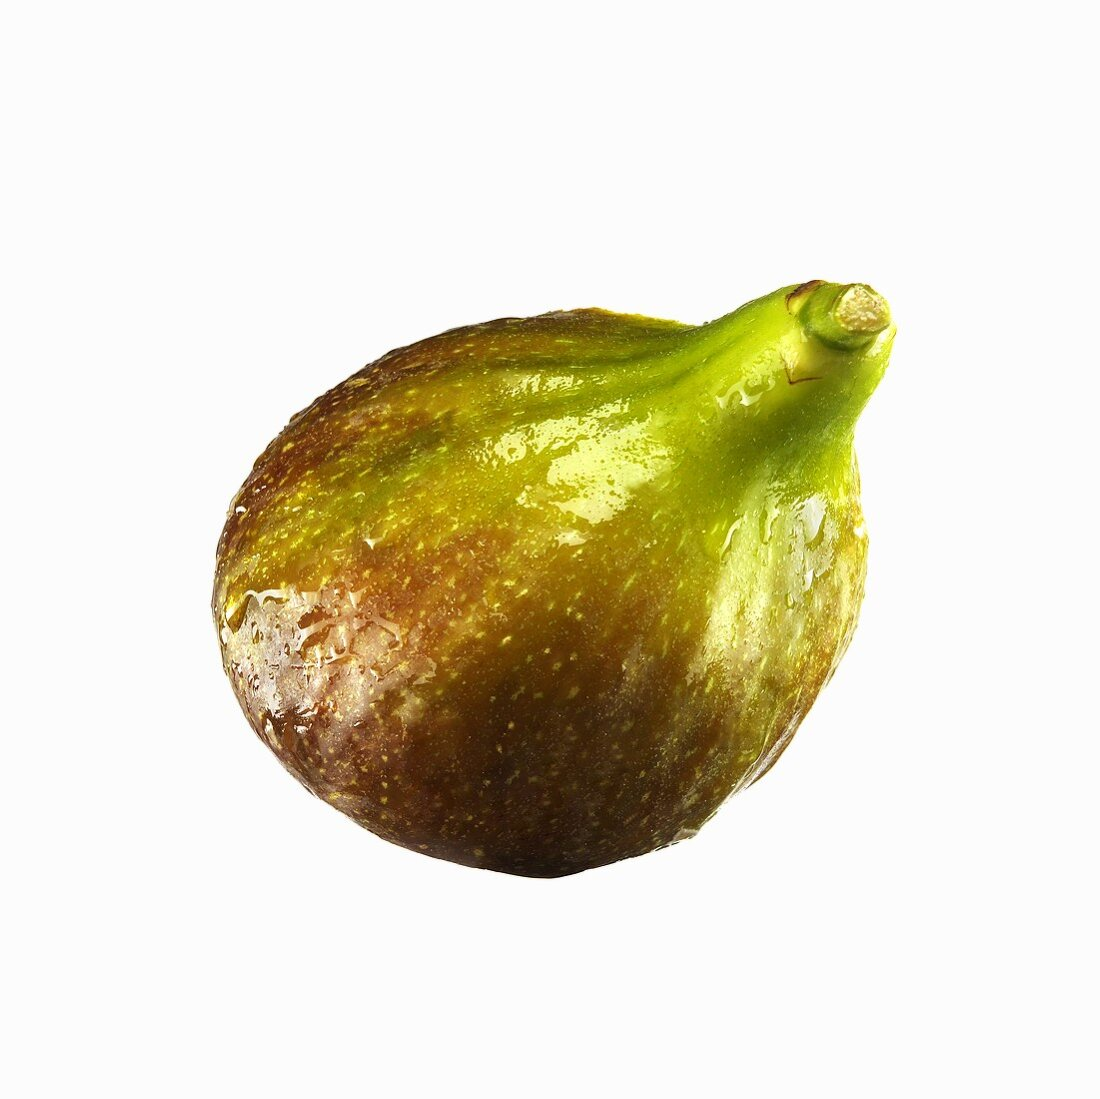 A fresh fig with drops of water